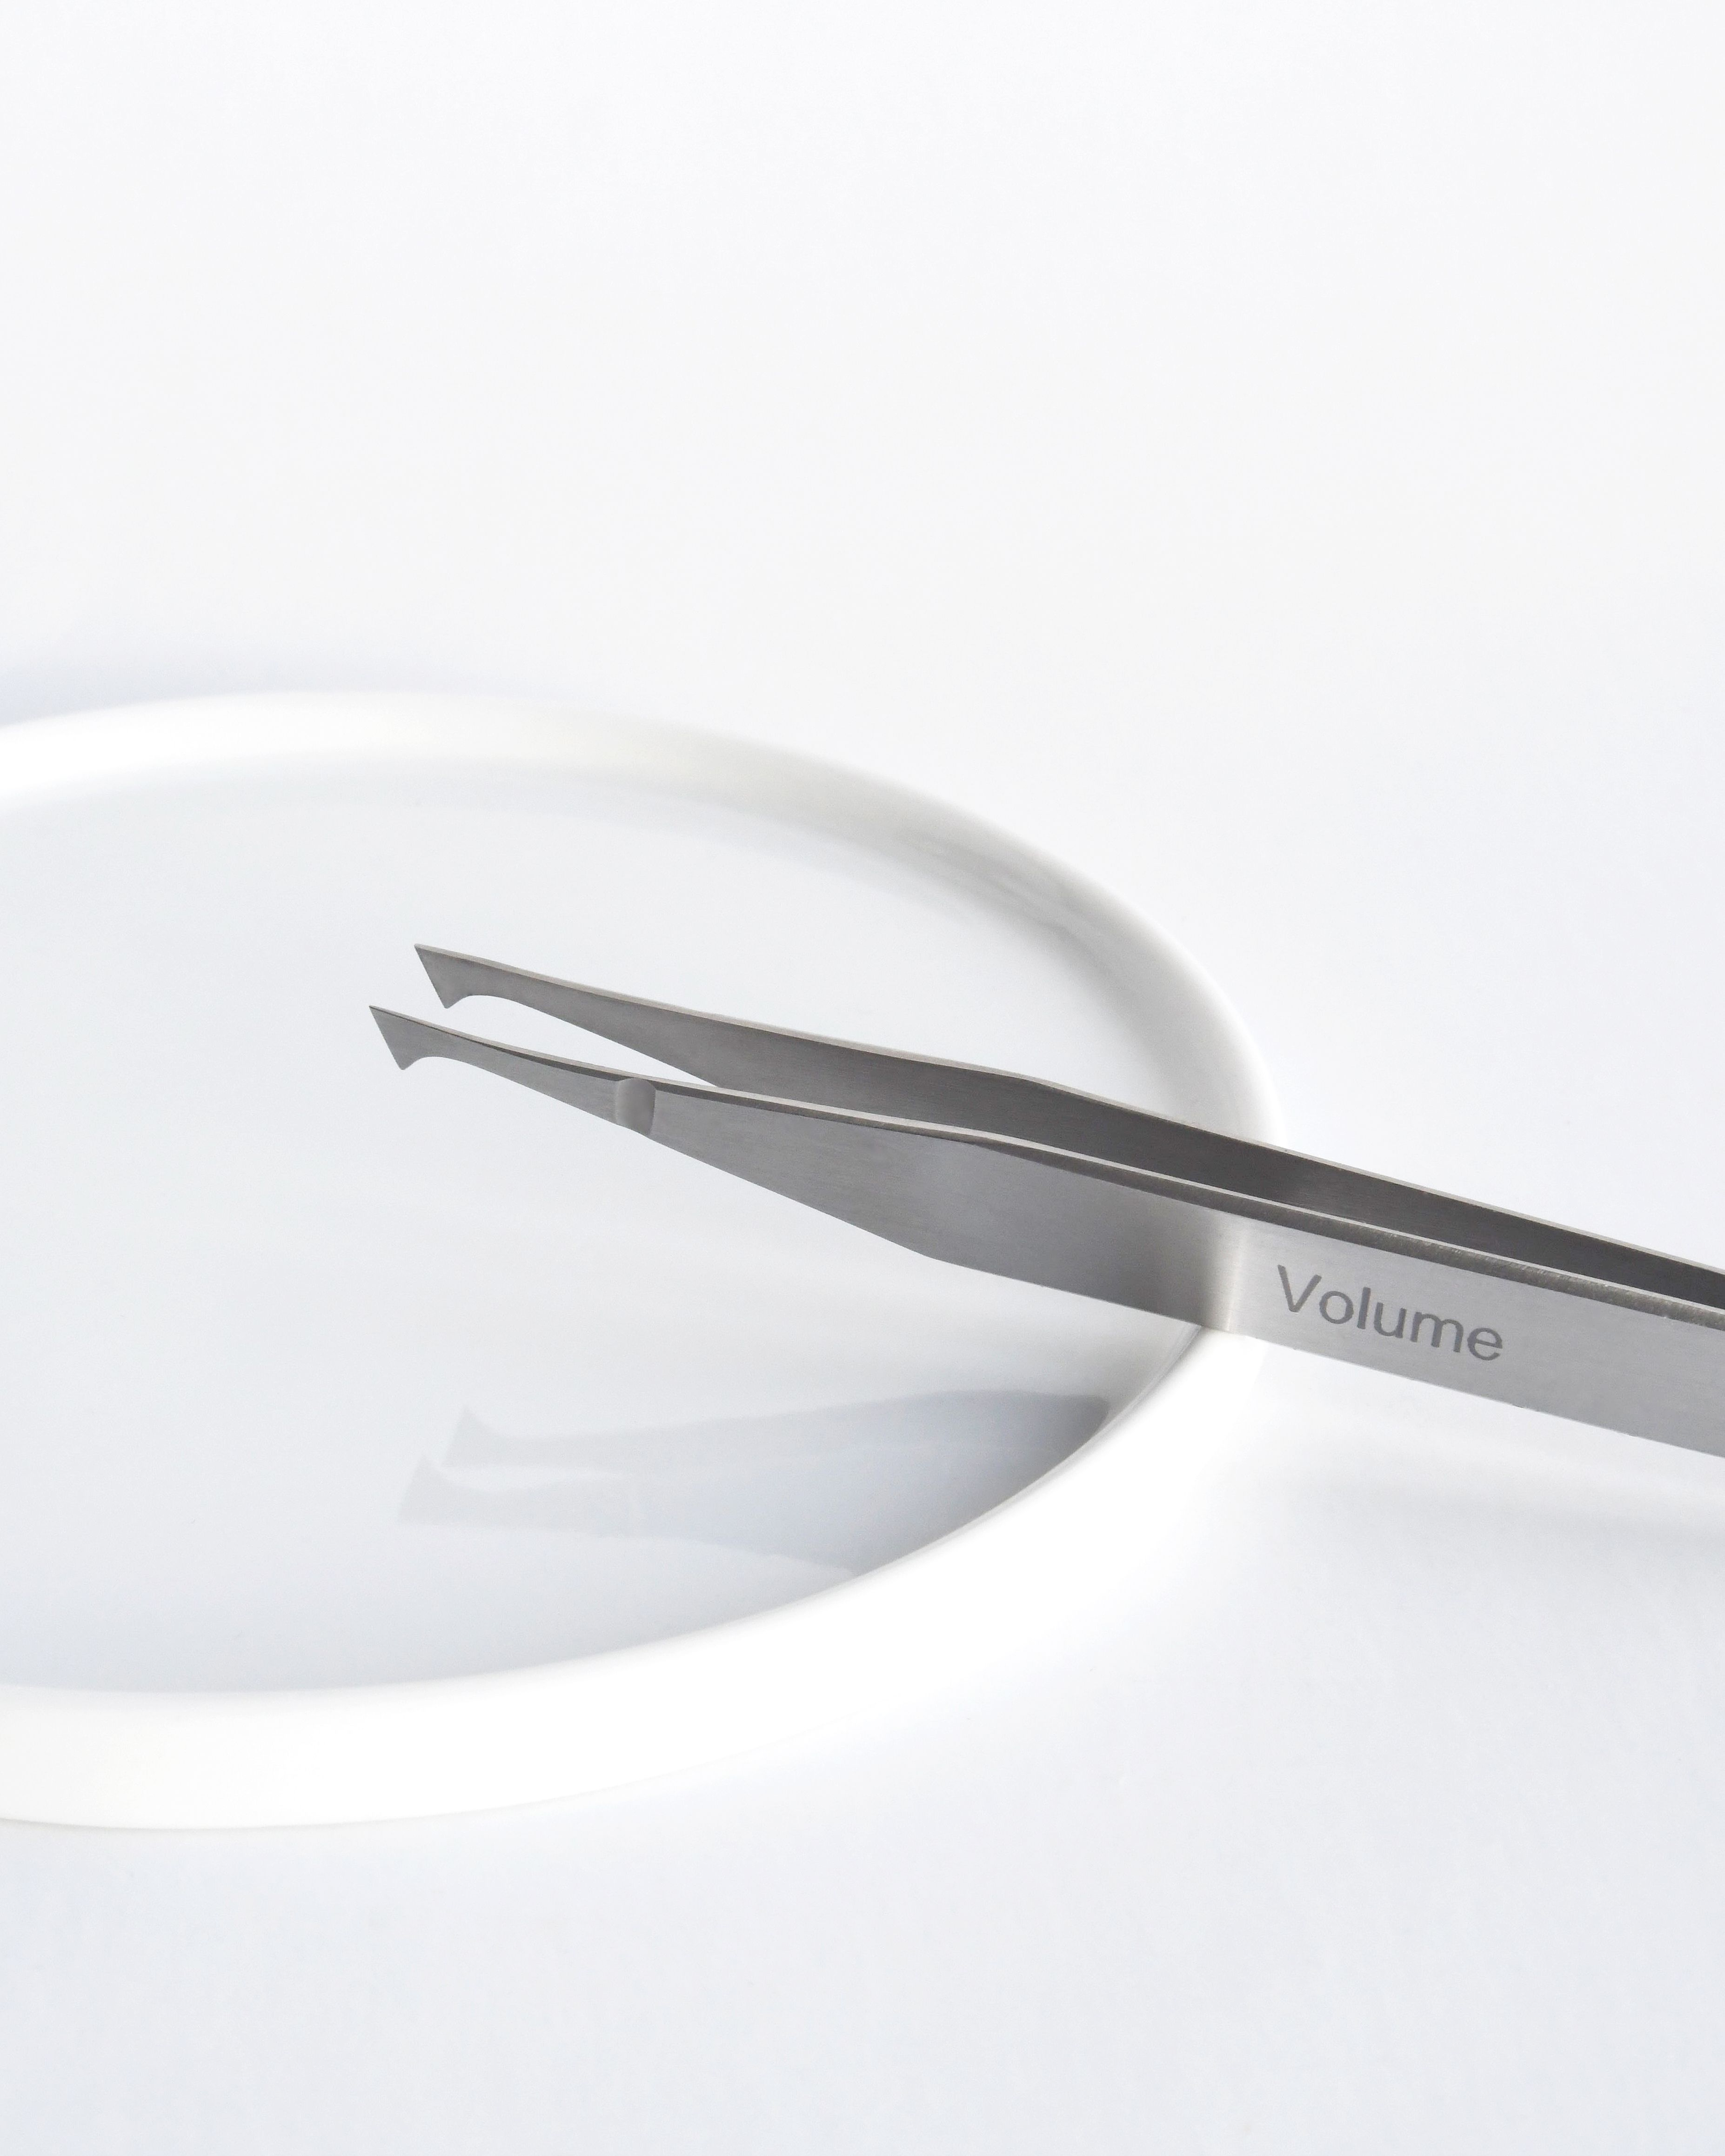 $35 CAD  •  Made from surgical stainless steel, with a balanced lightweight design, and a precision tight grip with the flushed fine tip, these tweezer are not only comfortable but also precision perfect.